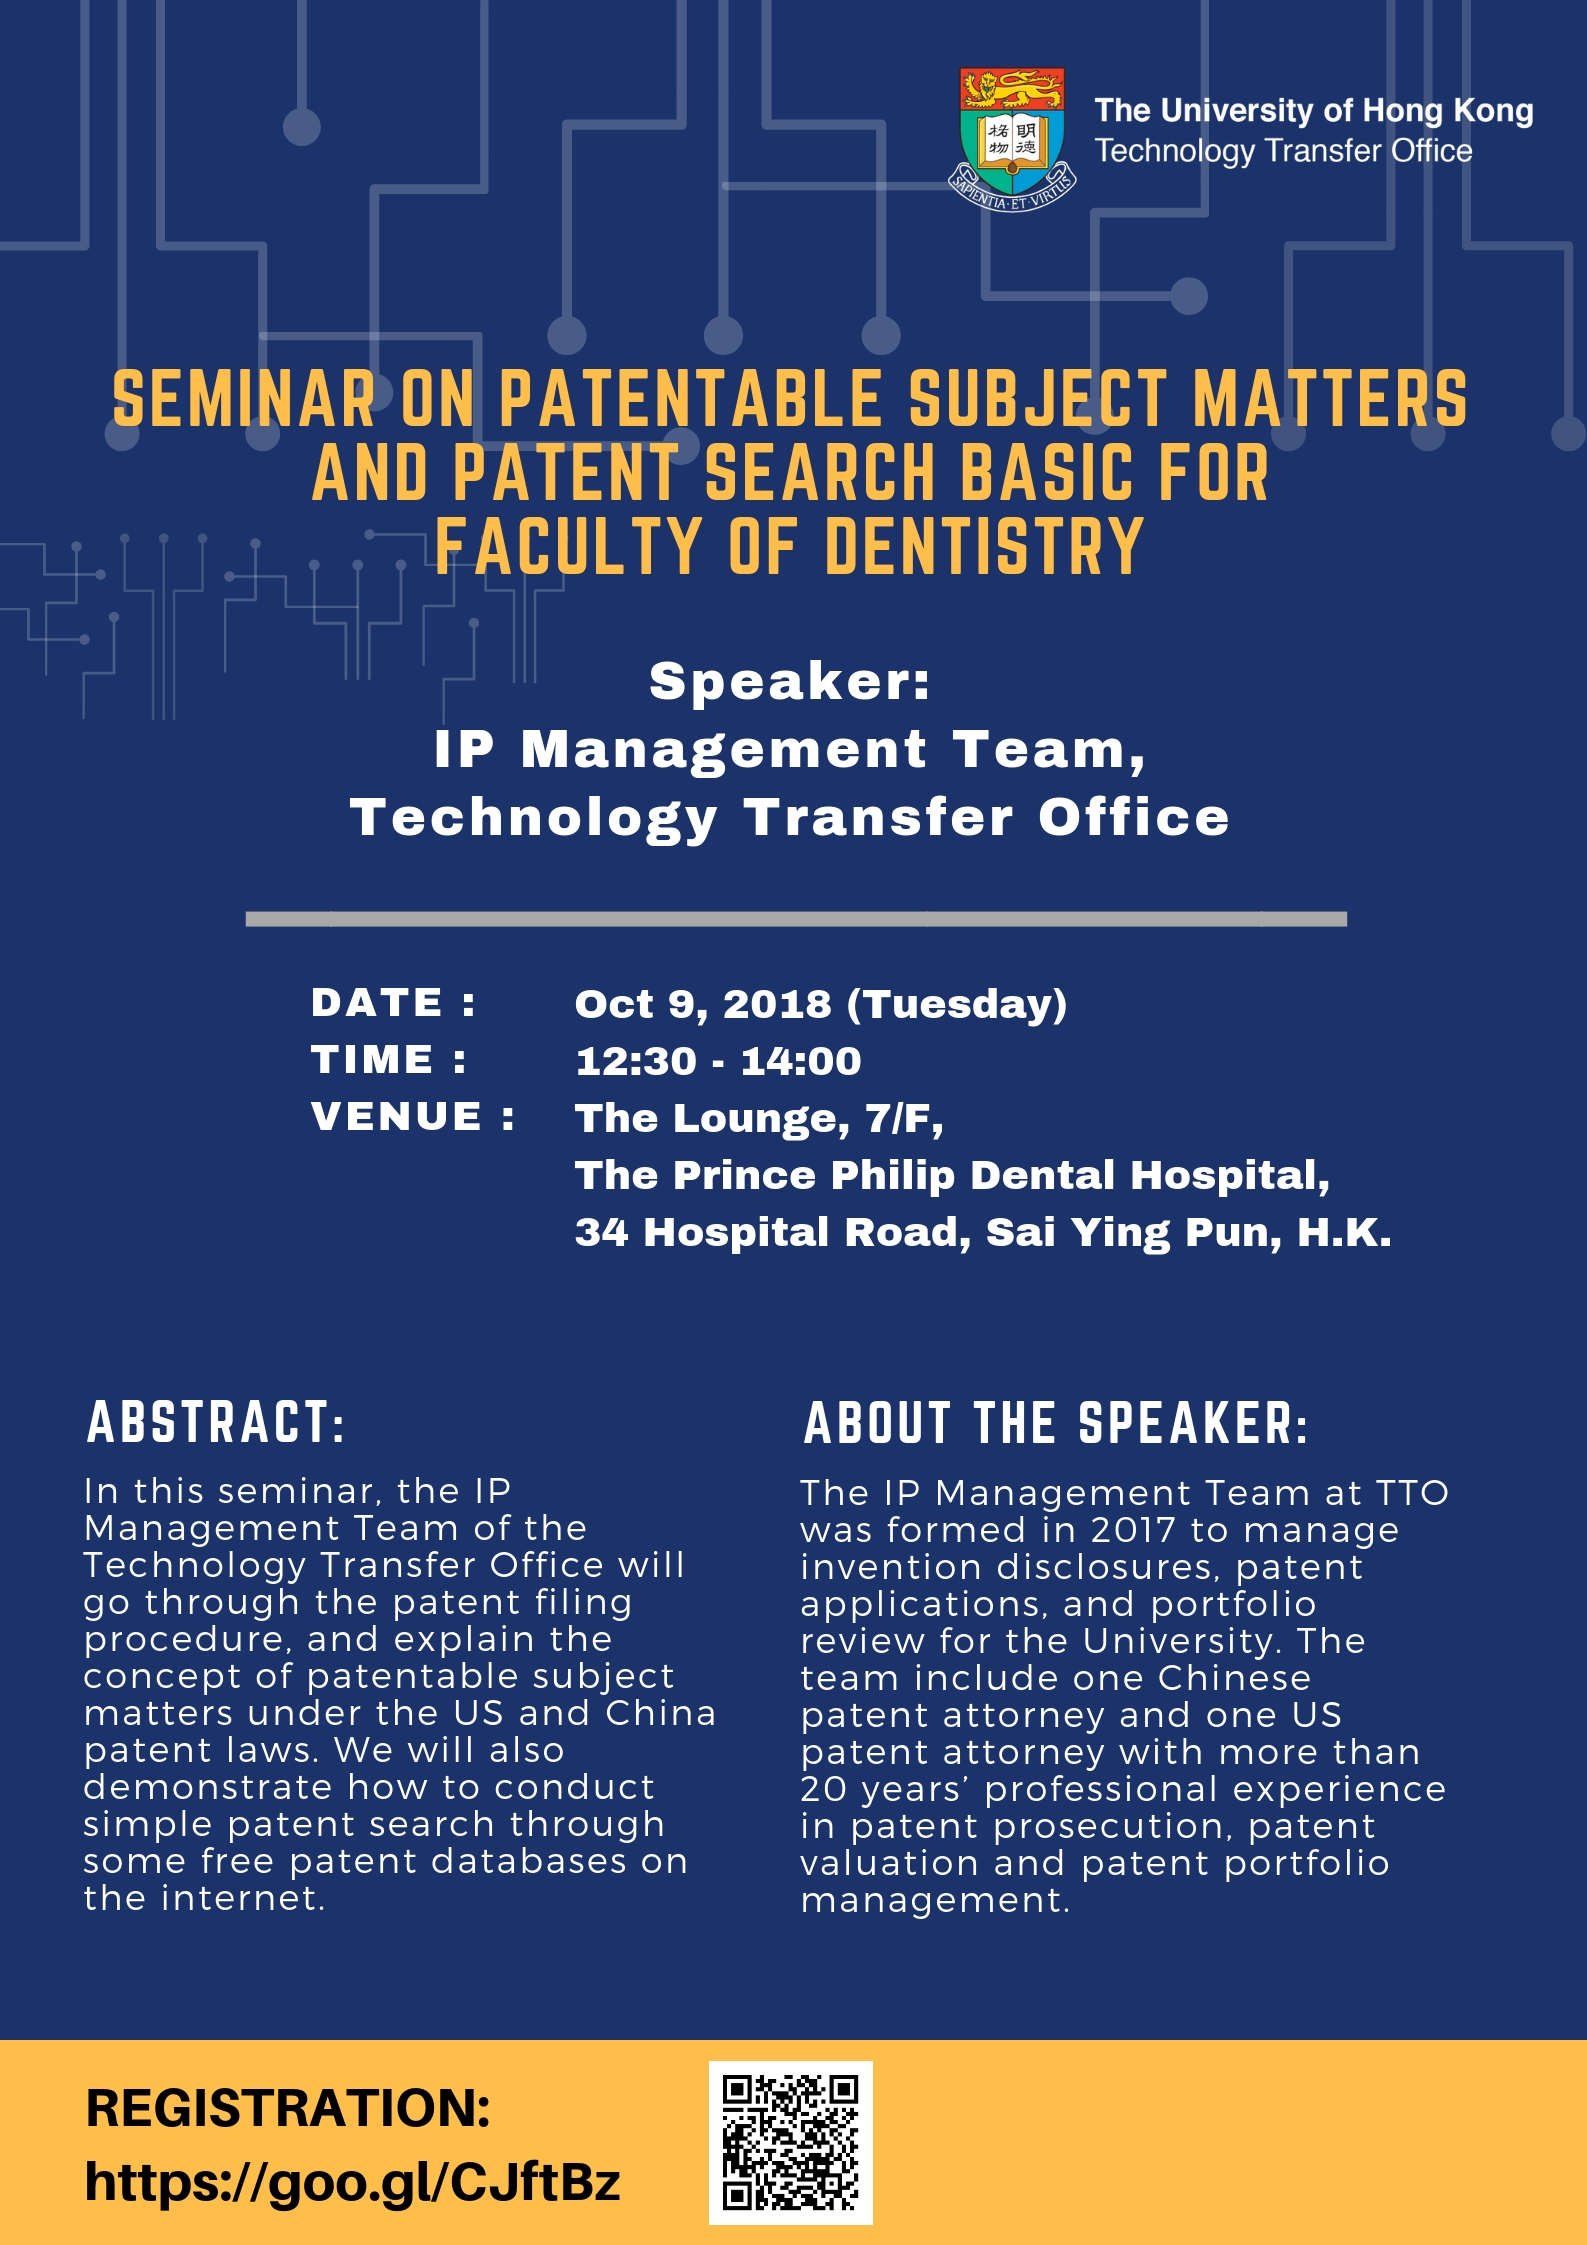 Seminar on Patentable Subject Matters and Patent Search Basic for Faculty of Dentistry